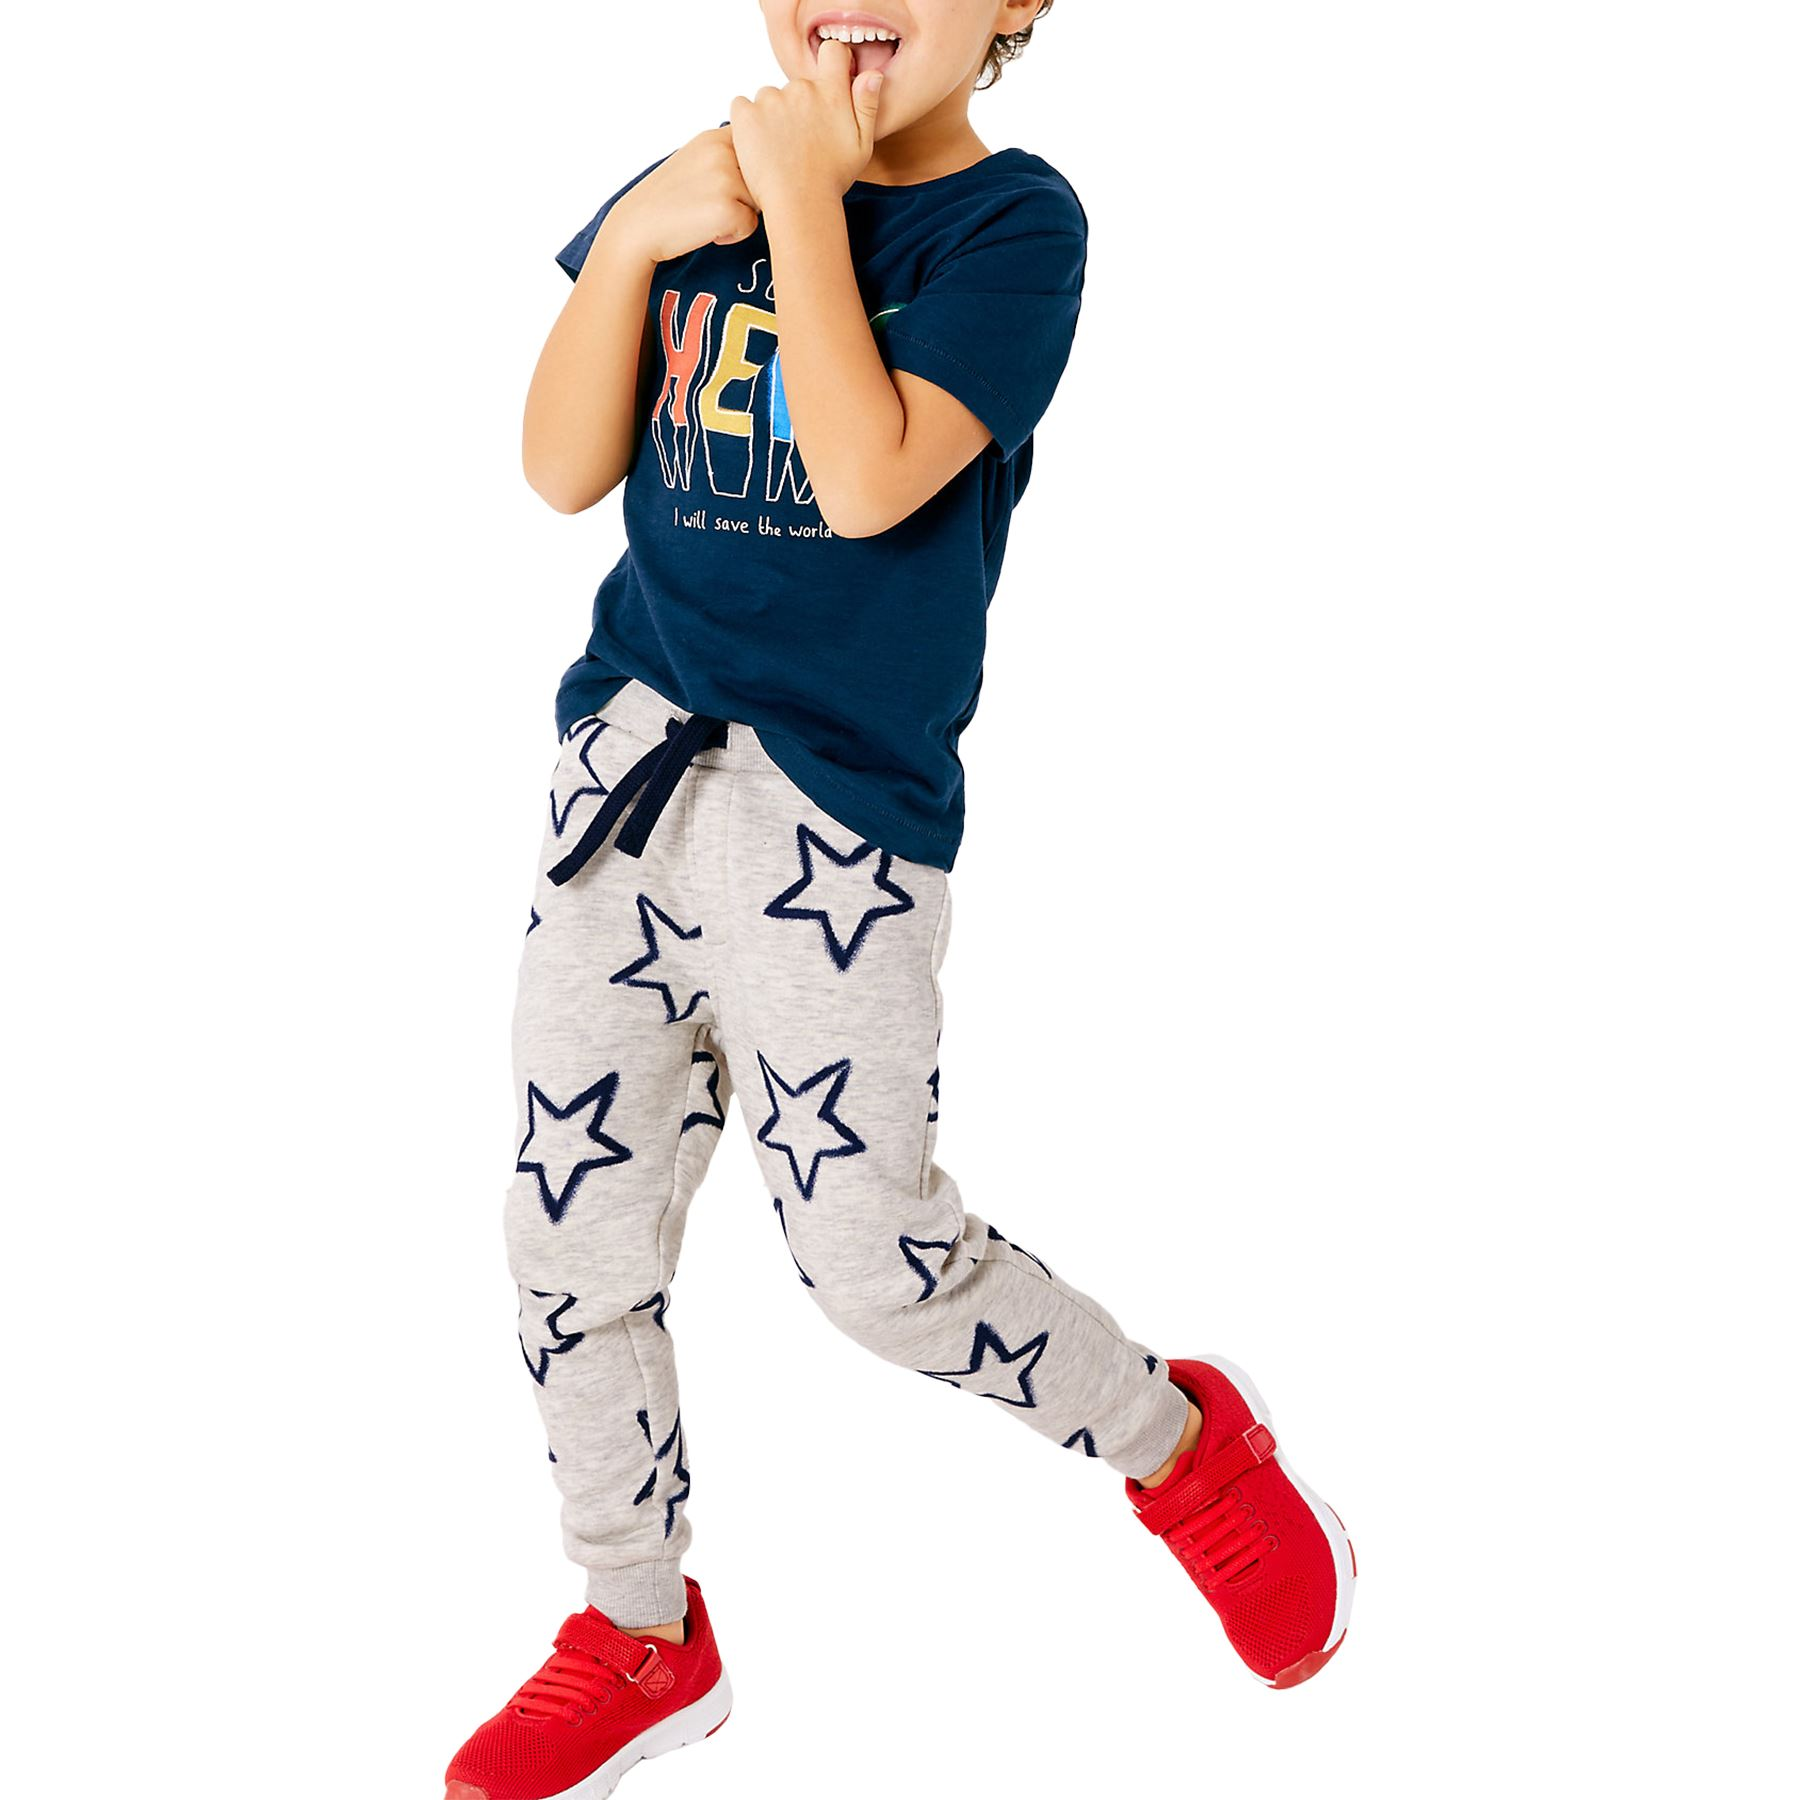 Whispering Jones London M/&S Elasticated Boys Kids Tracksuit Bottoms Jogging Lounging Pyjama Trousers